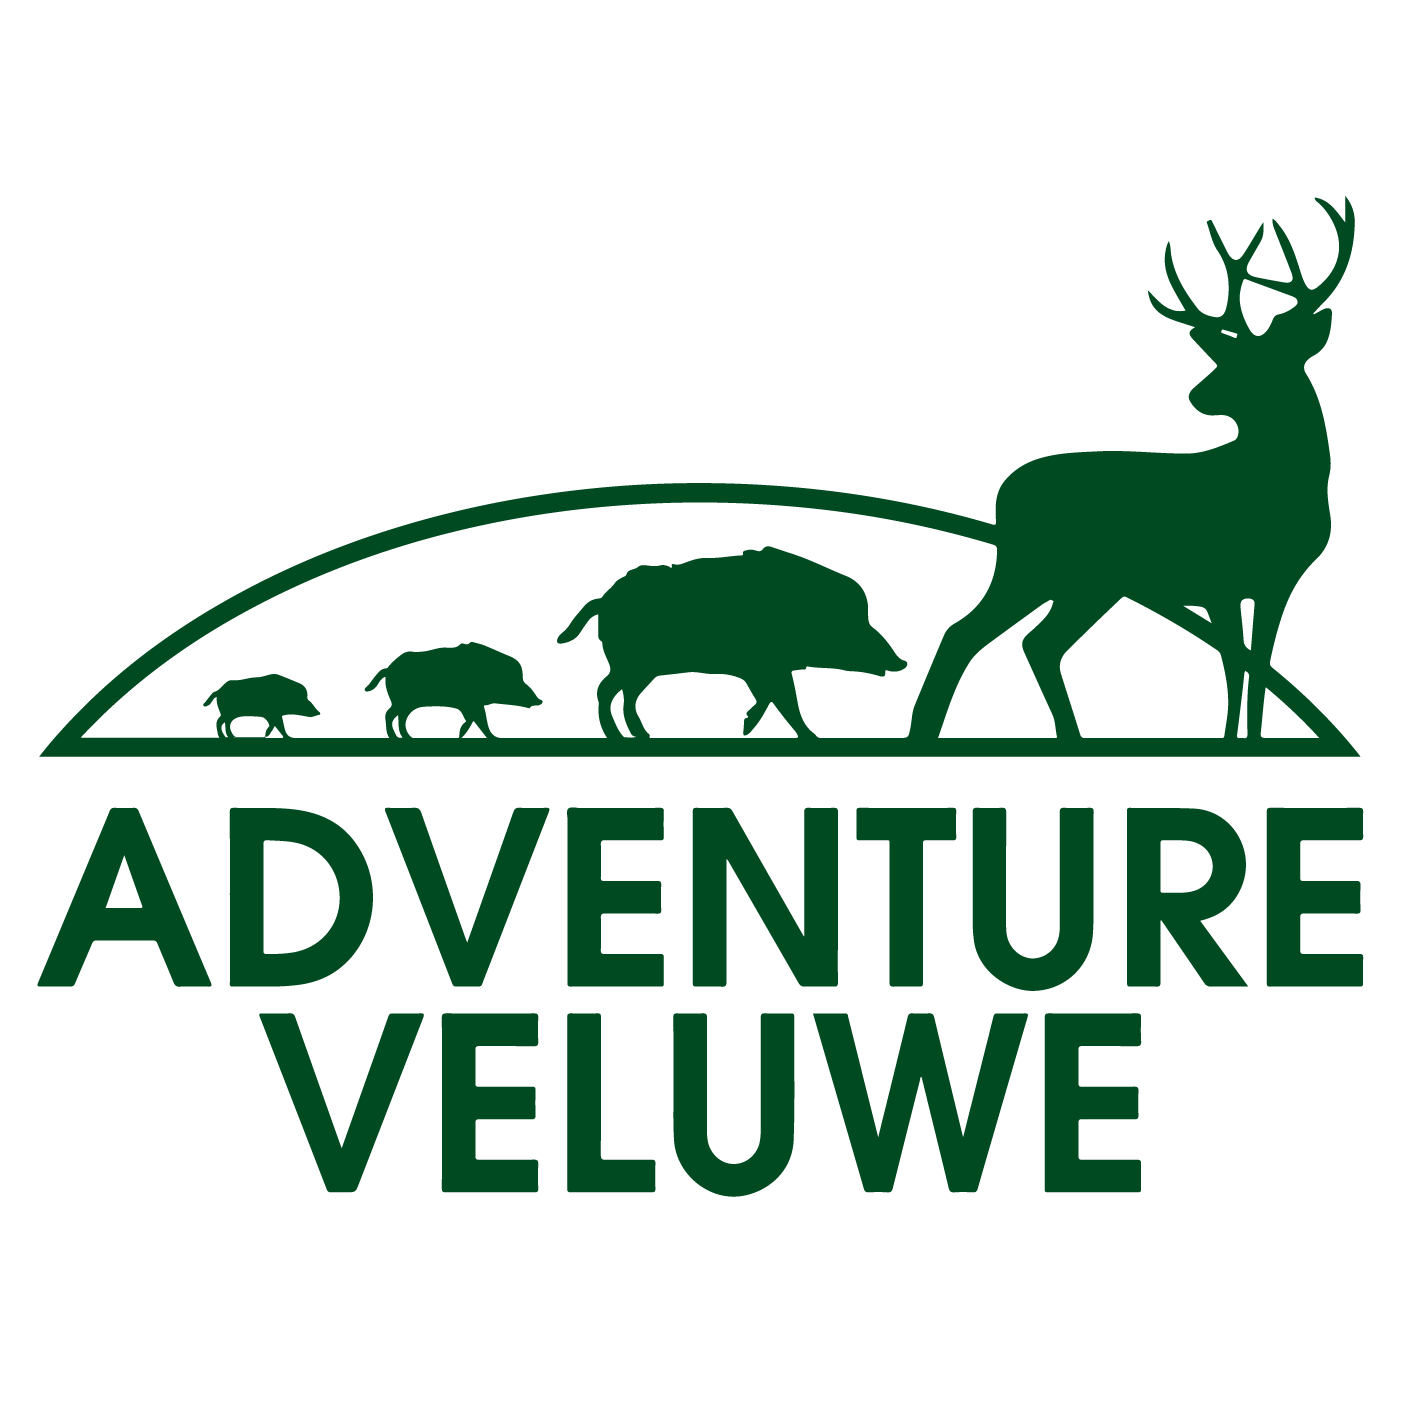 Adventure Veluwe